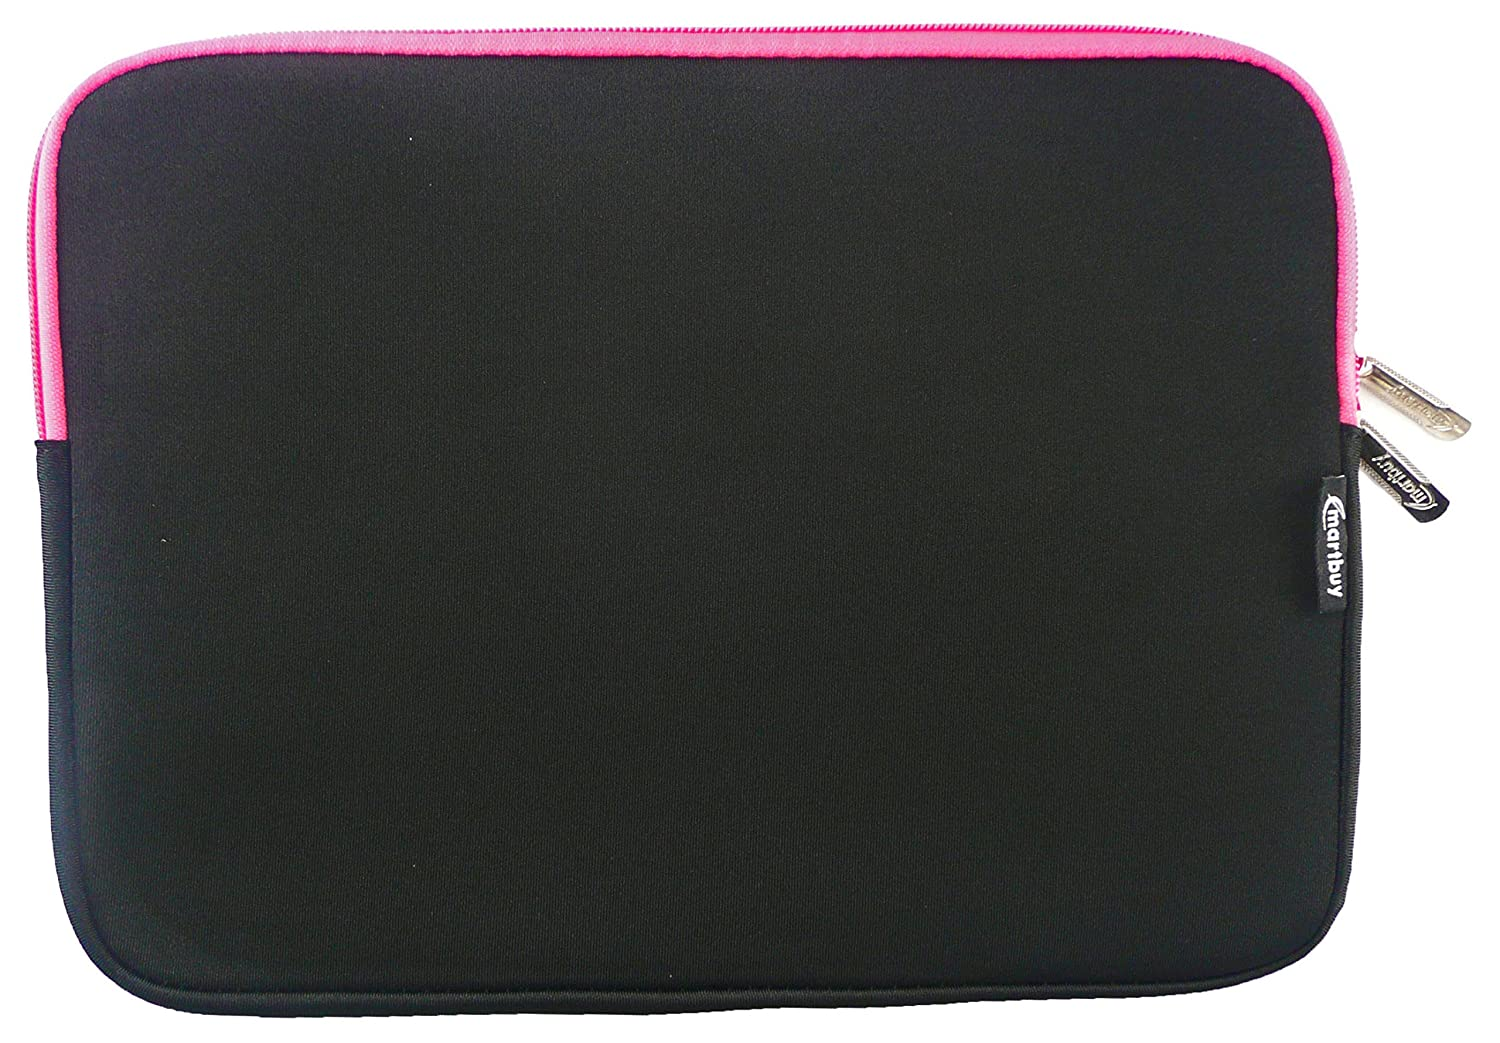 Emartbuy Black//Red 12.5-14 Inch Water Resistant Neoprene Soft Zip Case Cover Sleeve With Red Interior /& Zip suitable for Dell Latitude 7480 14 Inch Laptop